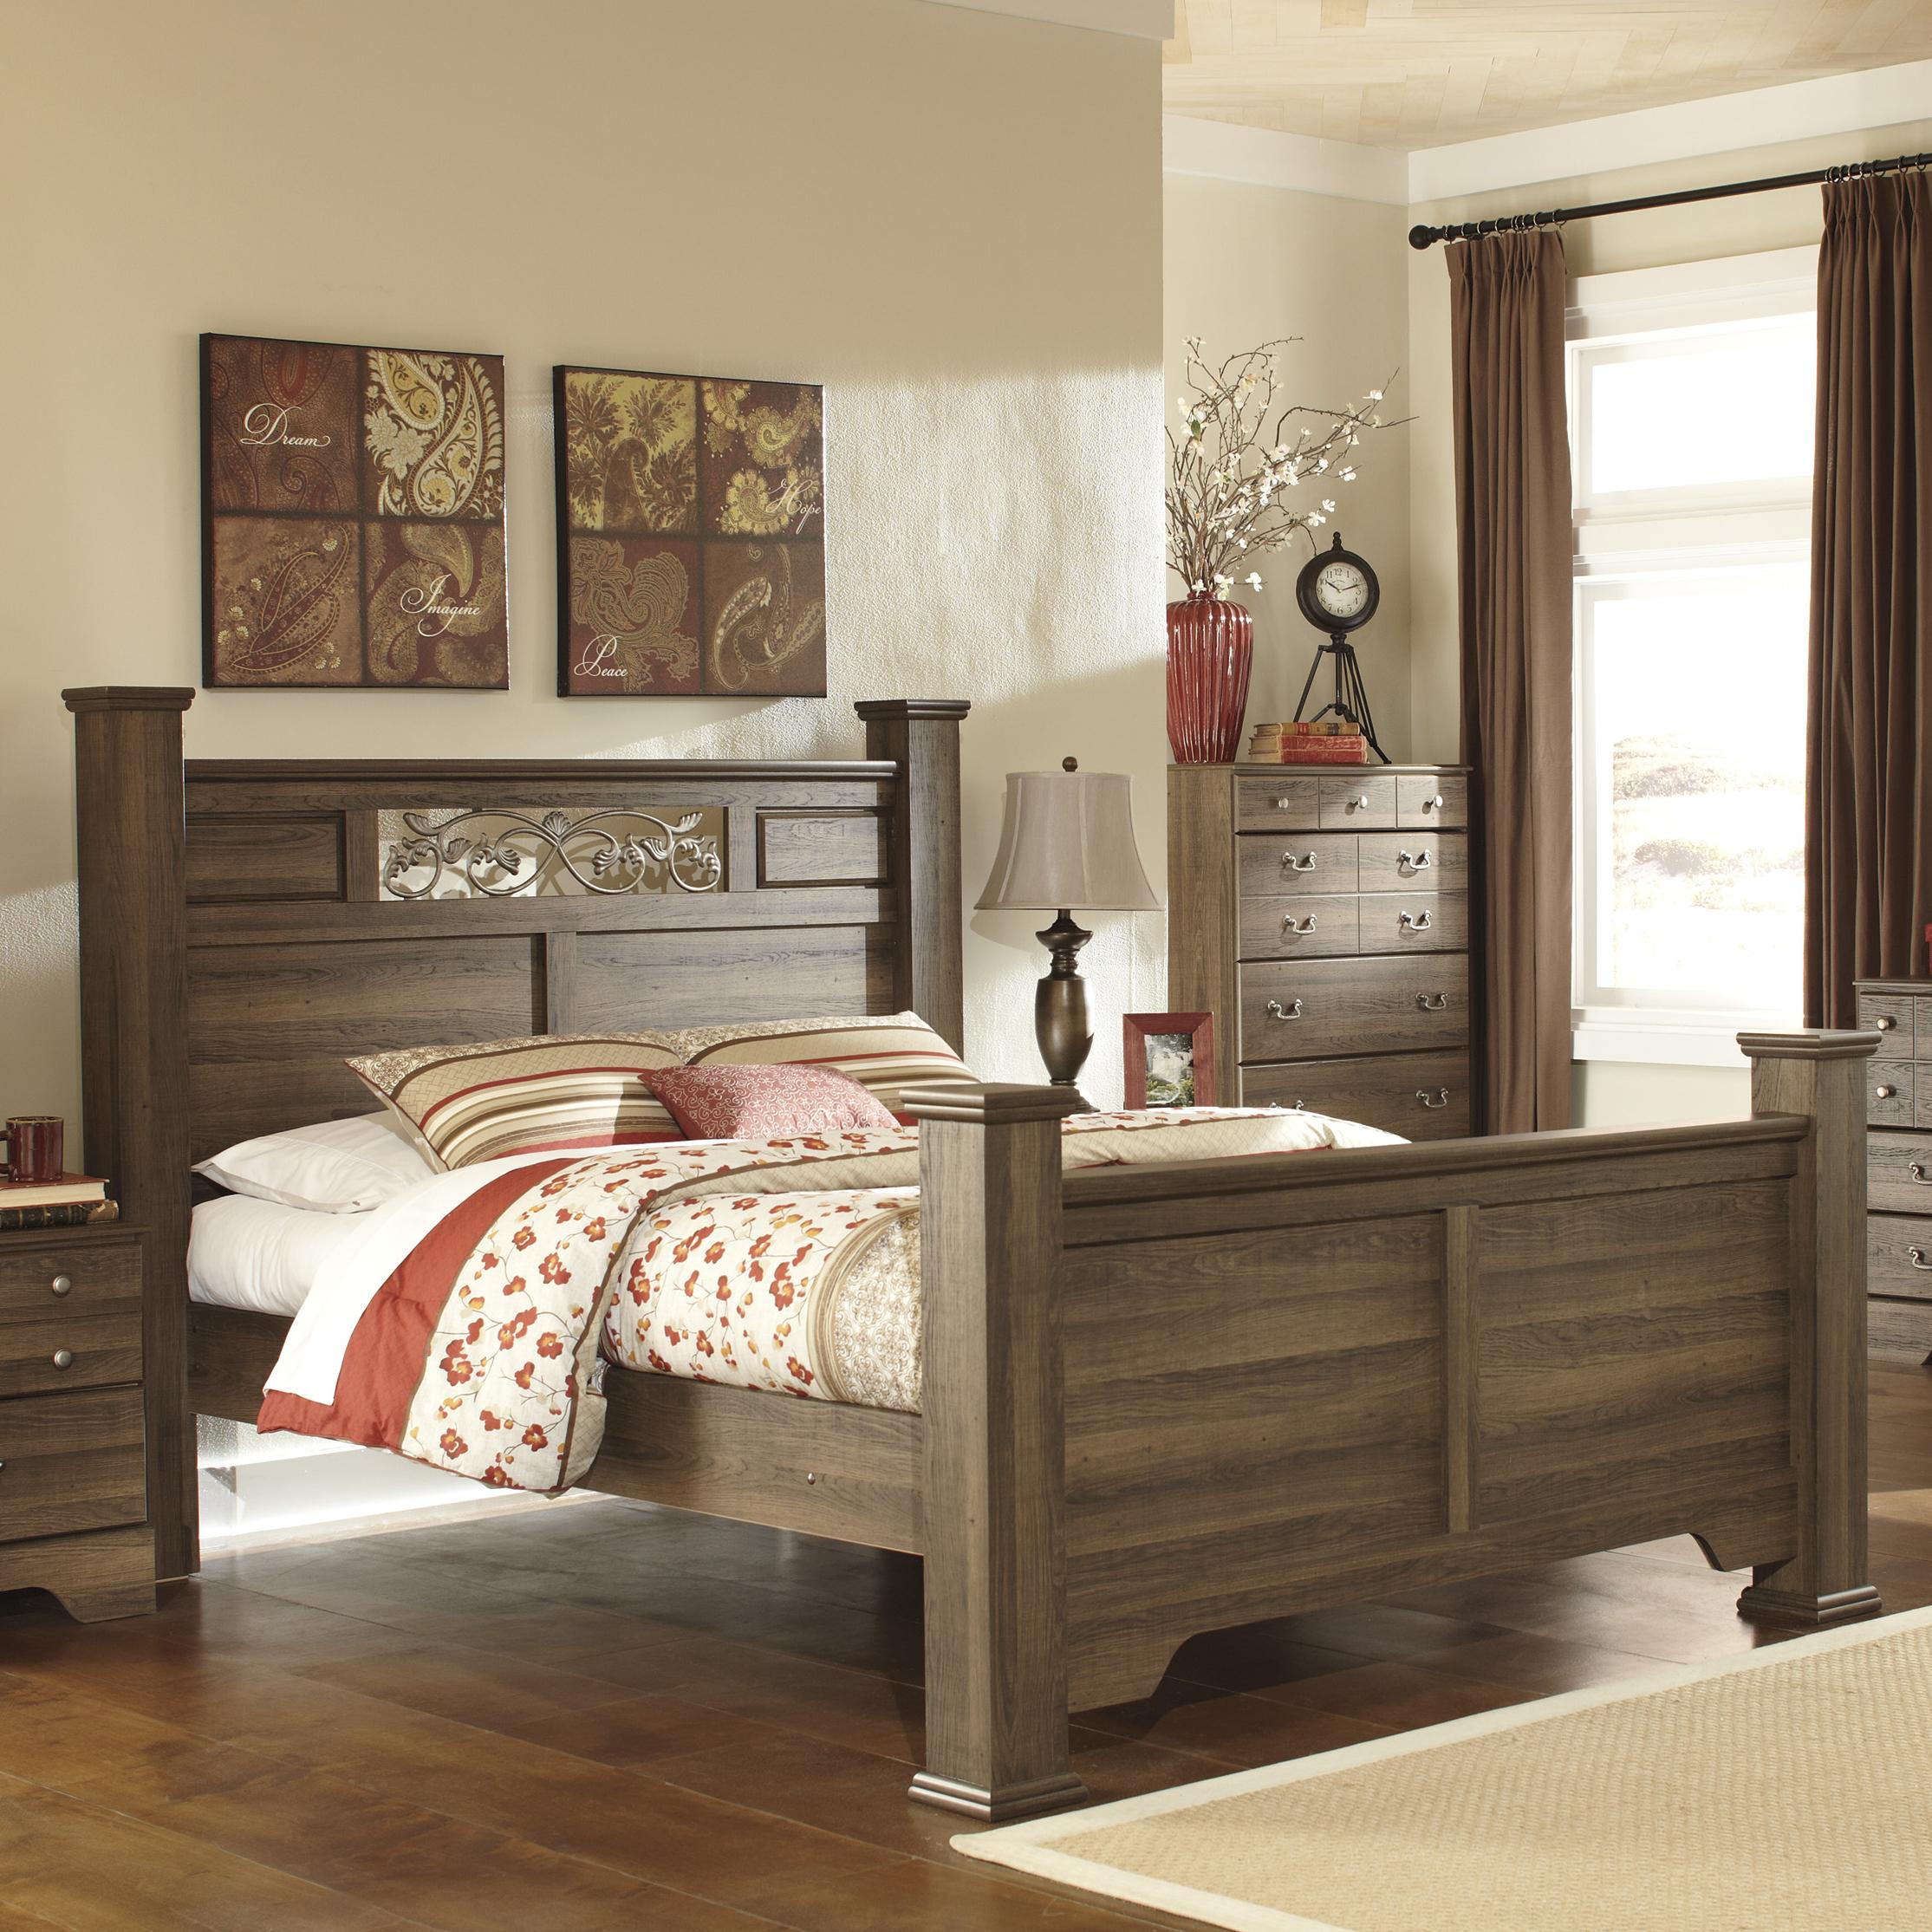 Signature Design by Ashley Allymore Queen Poster Bed - Item Number: B216-77+74+96+71